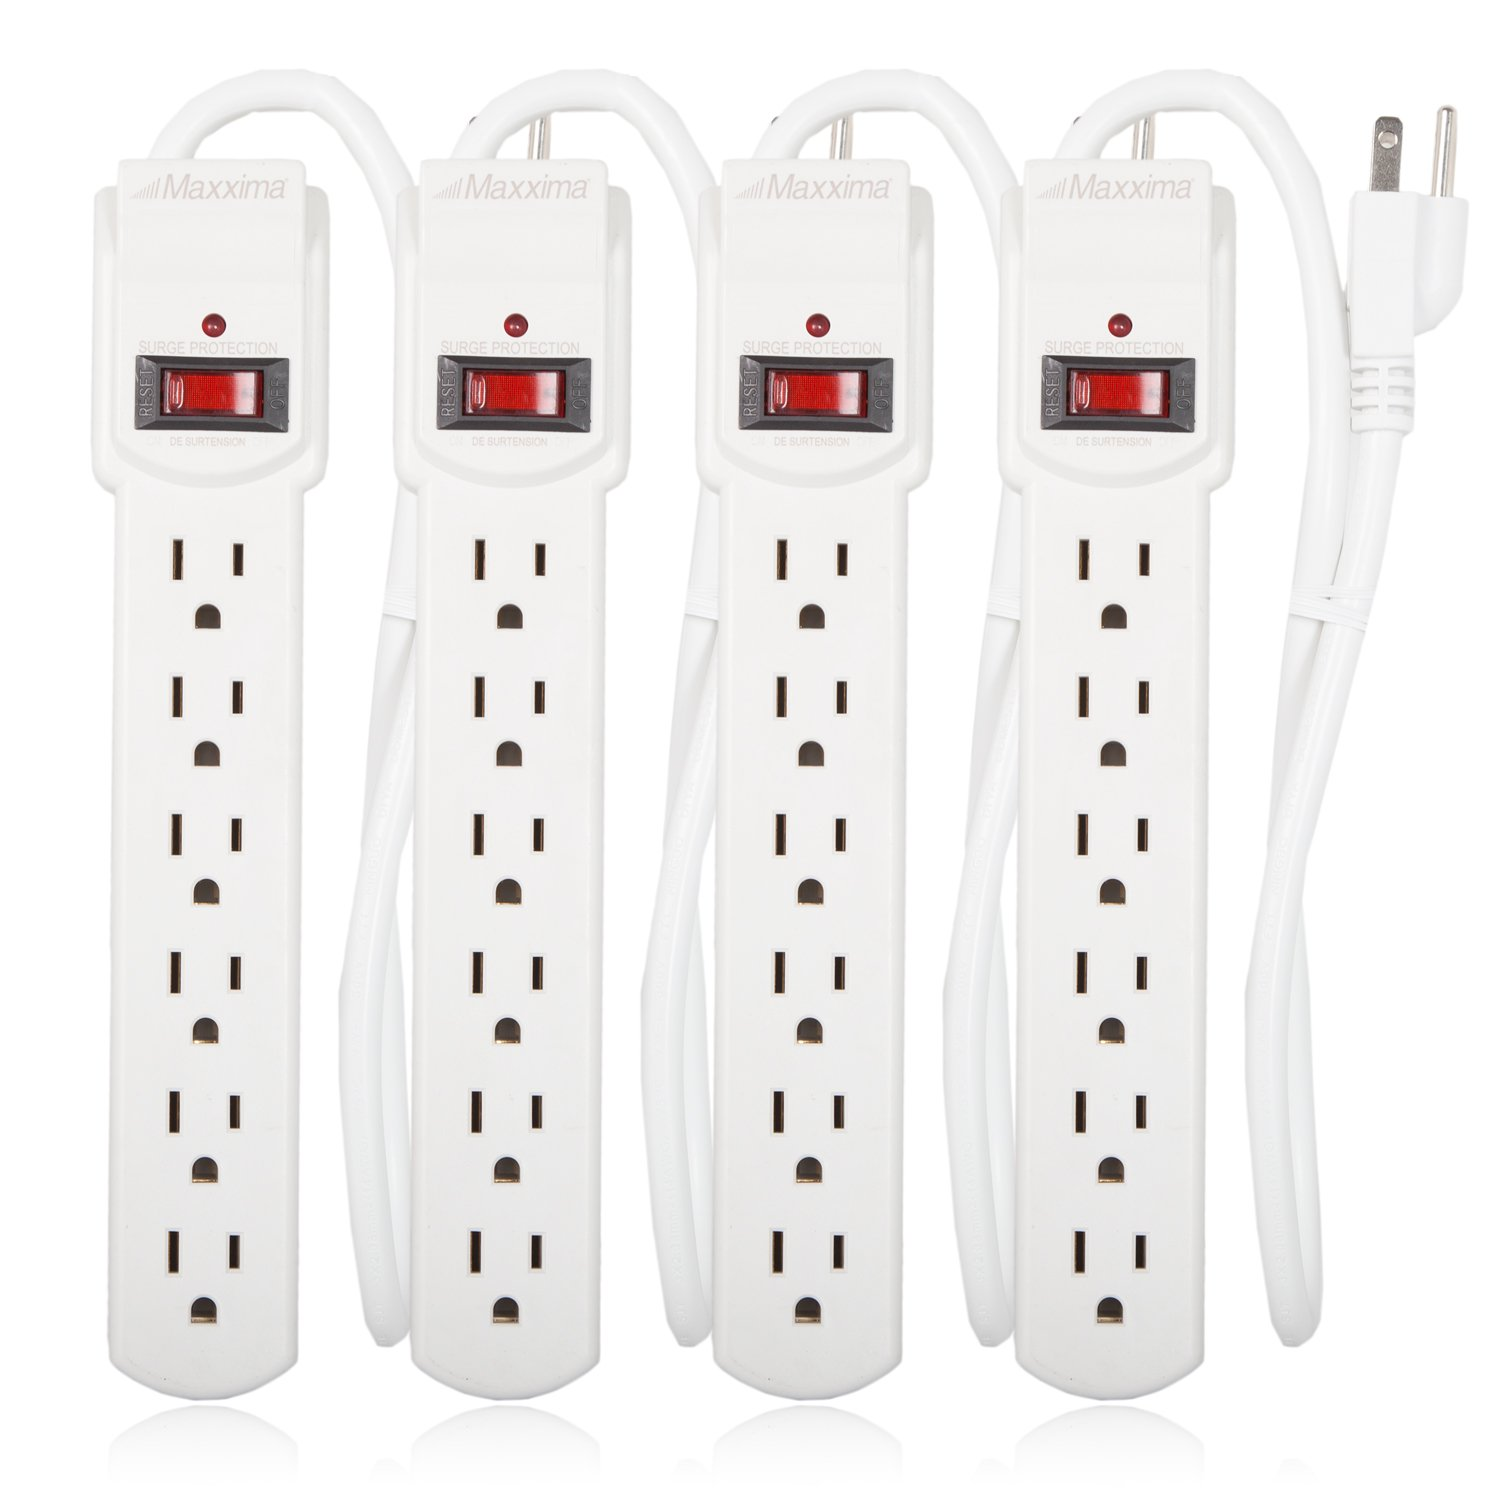 Maxxima 6 Outlet Power Strip Surge Protector 300 Joules, 2FT Cord, Switch (4 Pack)